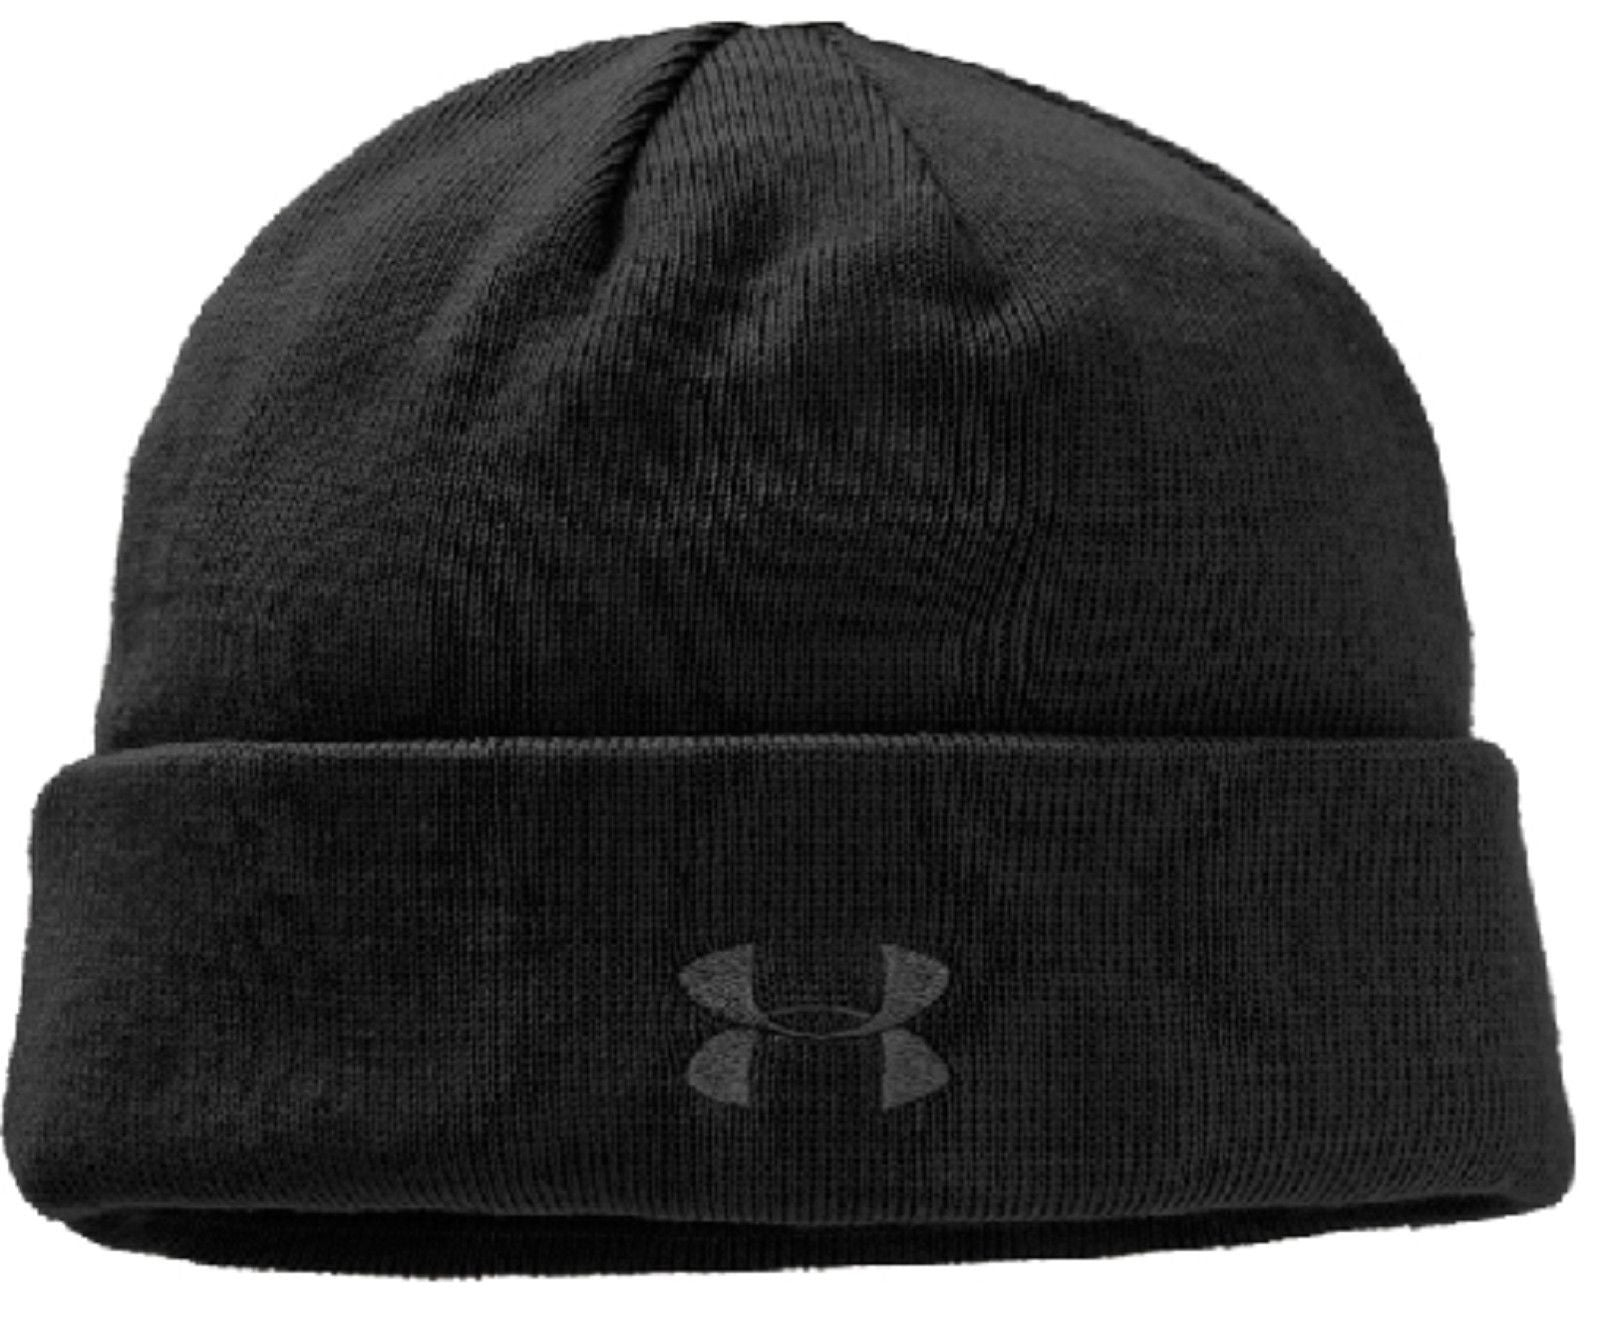 a1061fb1a Under Armour Stealth Beanie Winter Hat - UA HeatGear Lined Cold ...